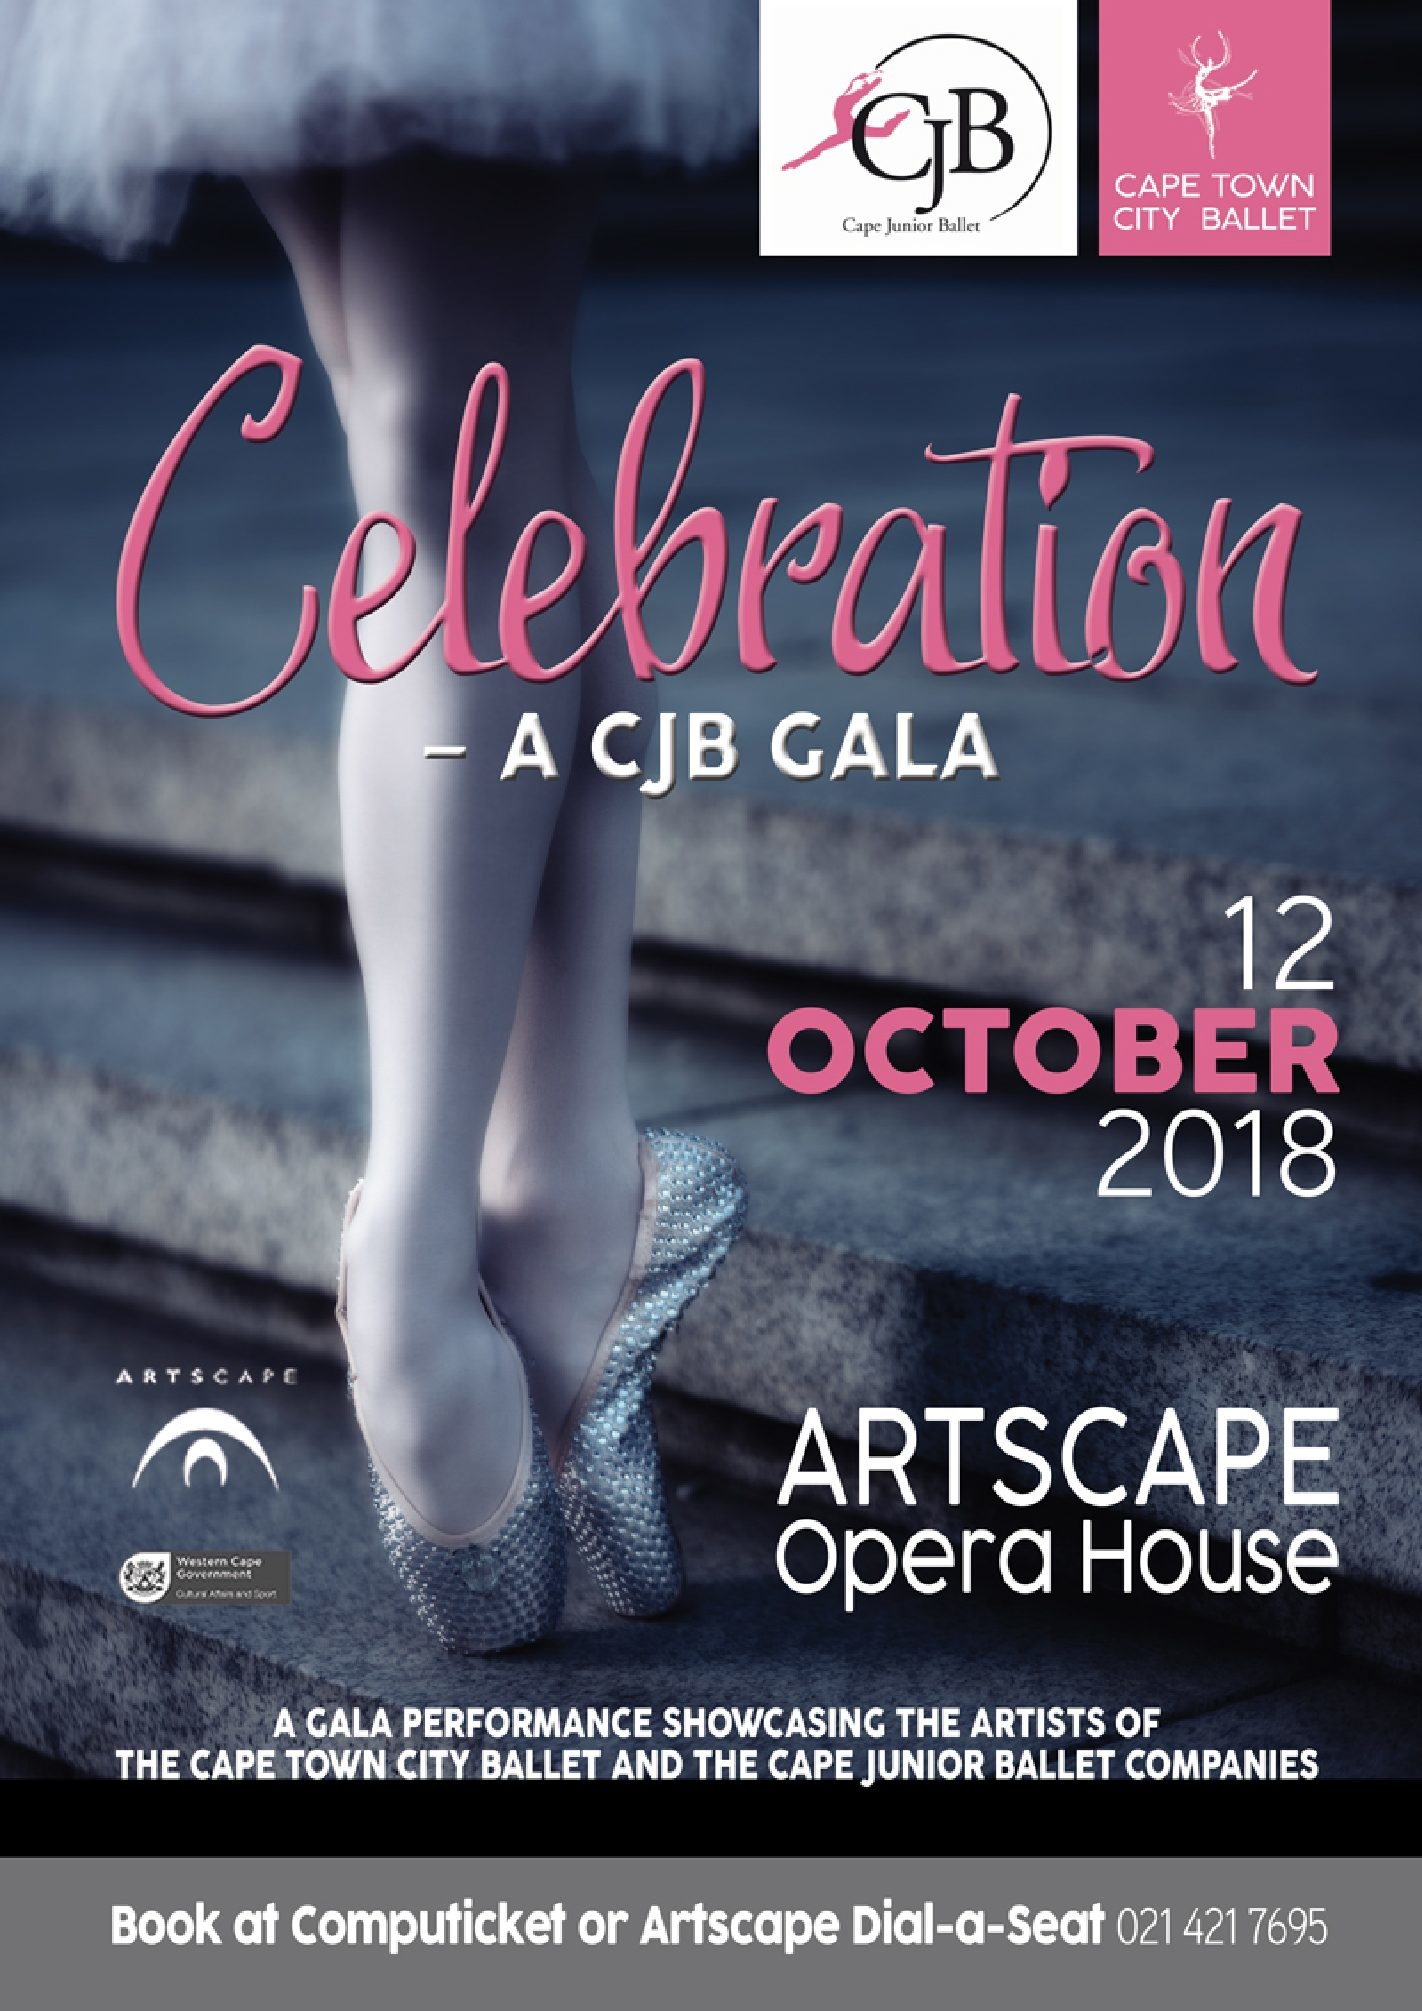 2018 Celebration by Cape Junior Ballet